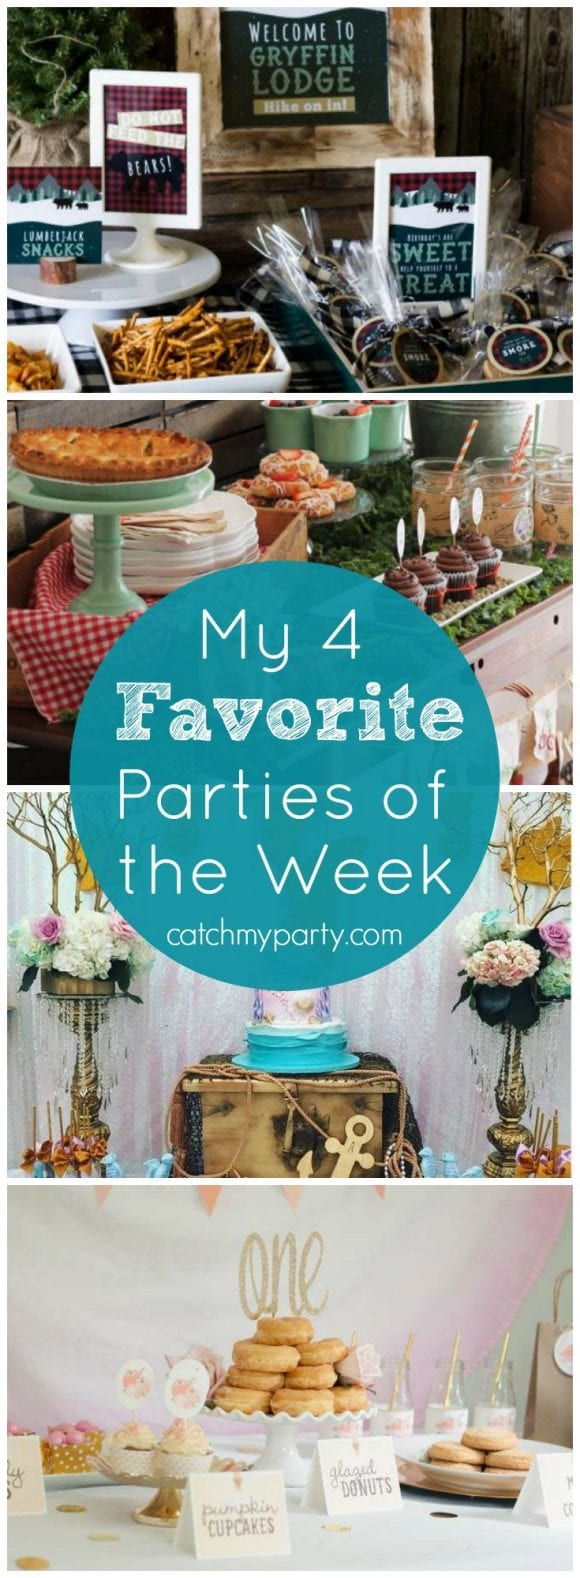 My favorite parties this week: a lumberjack 1st birthday, a farmer's market baby shower, a mermaid party, and a donut first birthday | Catchmyparty.com